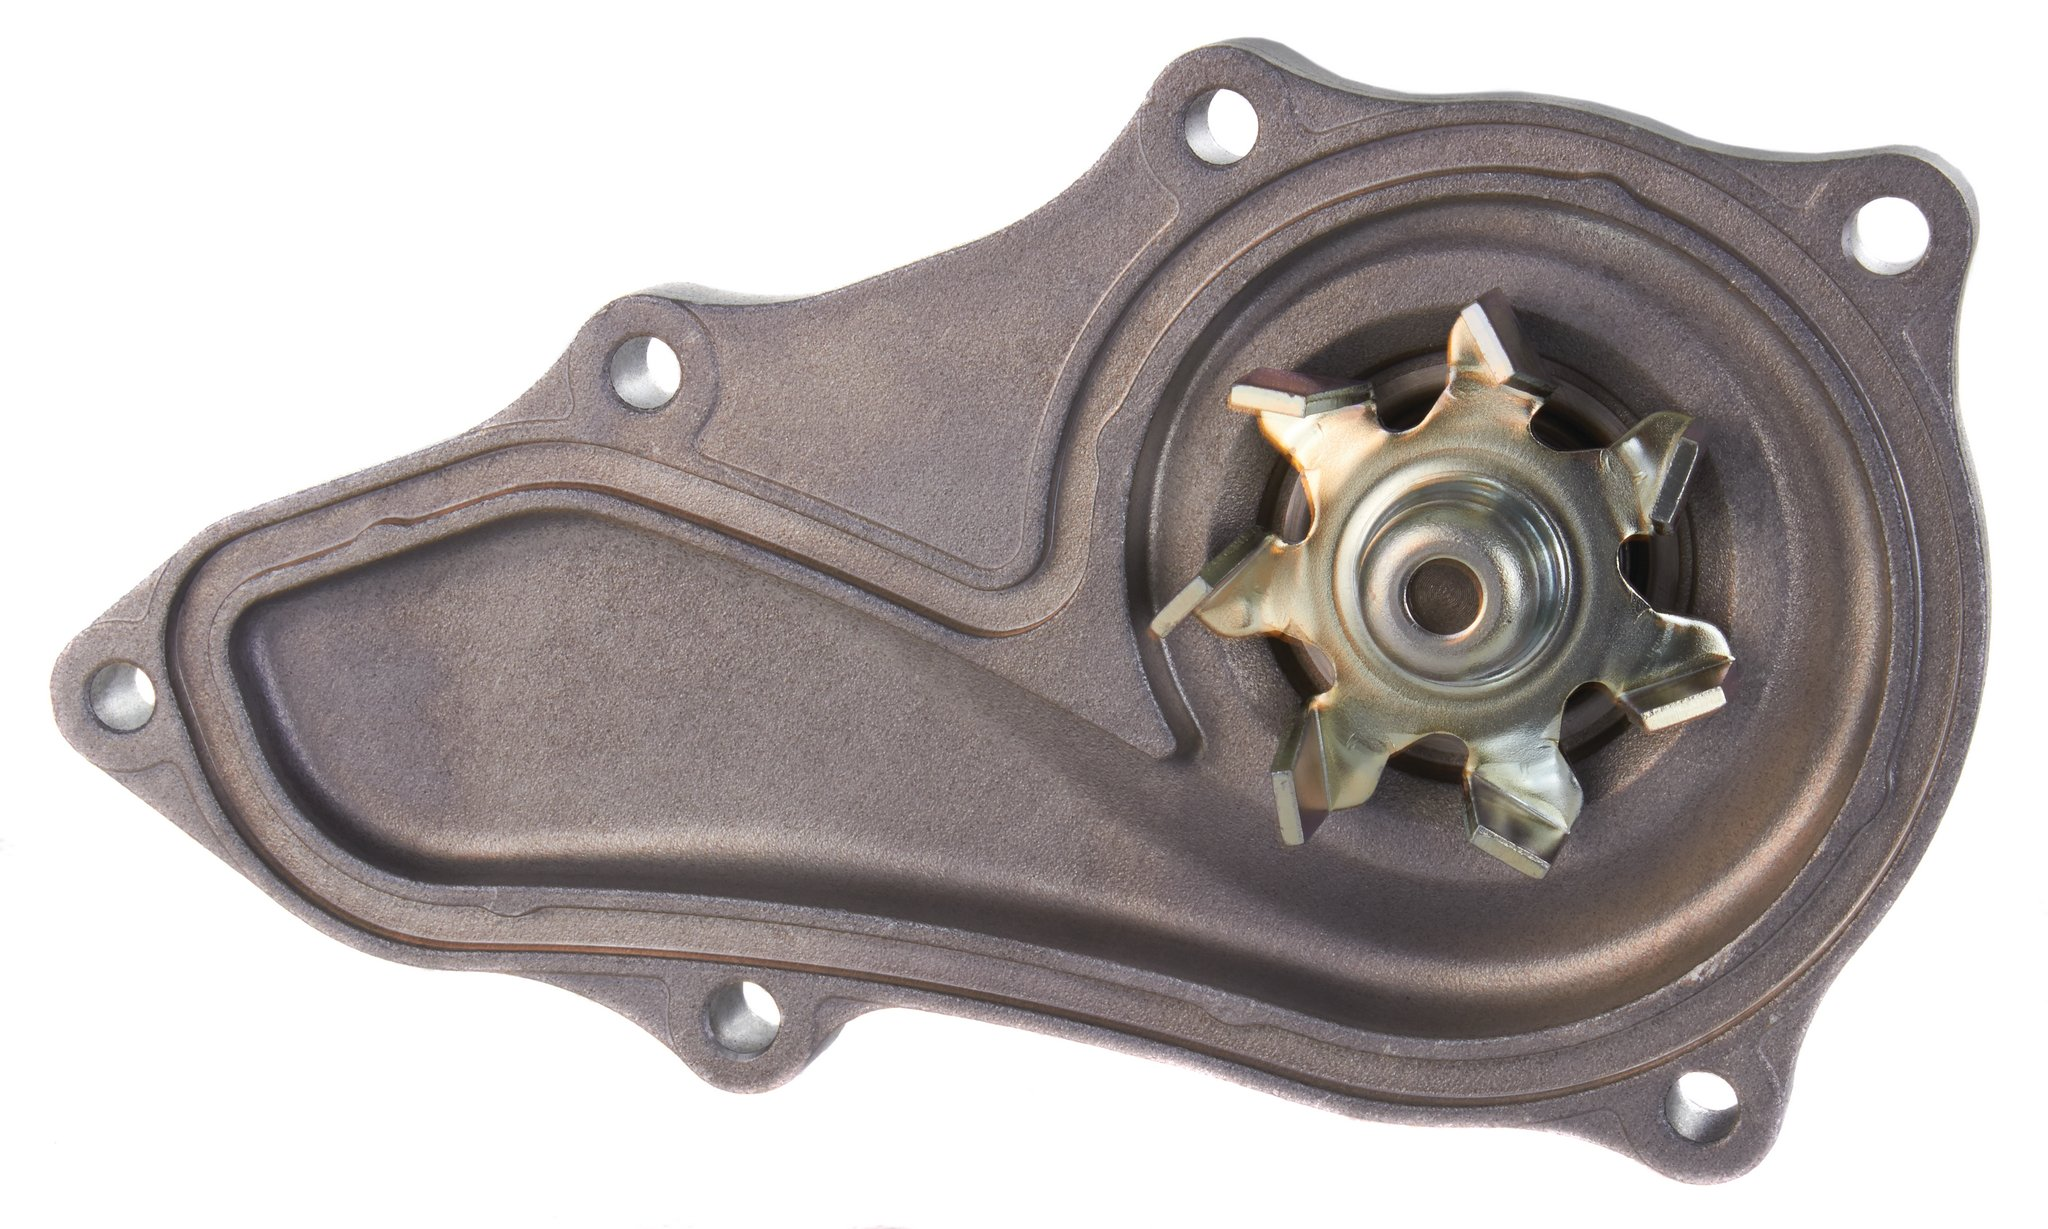 For Acura RDX L4 2.3L 2007-2012 Metal Impeller Engine Water Pump GMB 135-1610